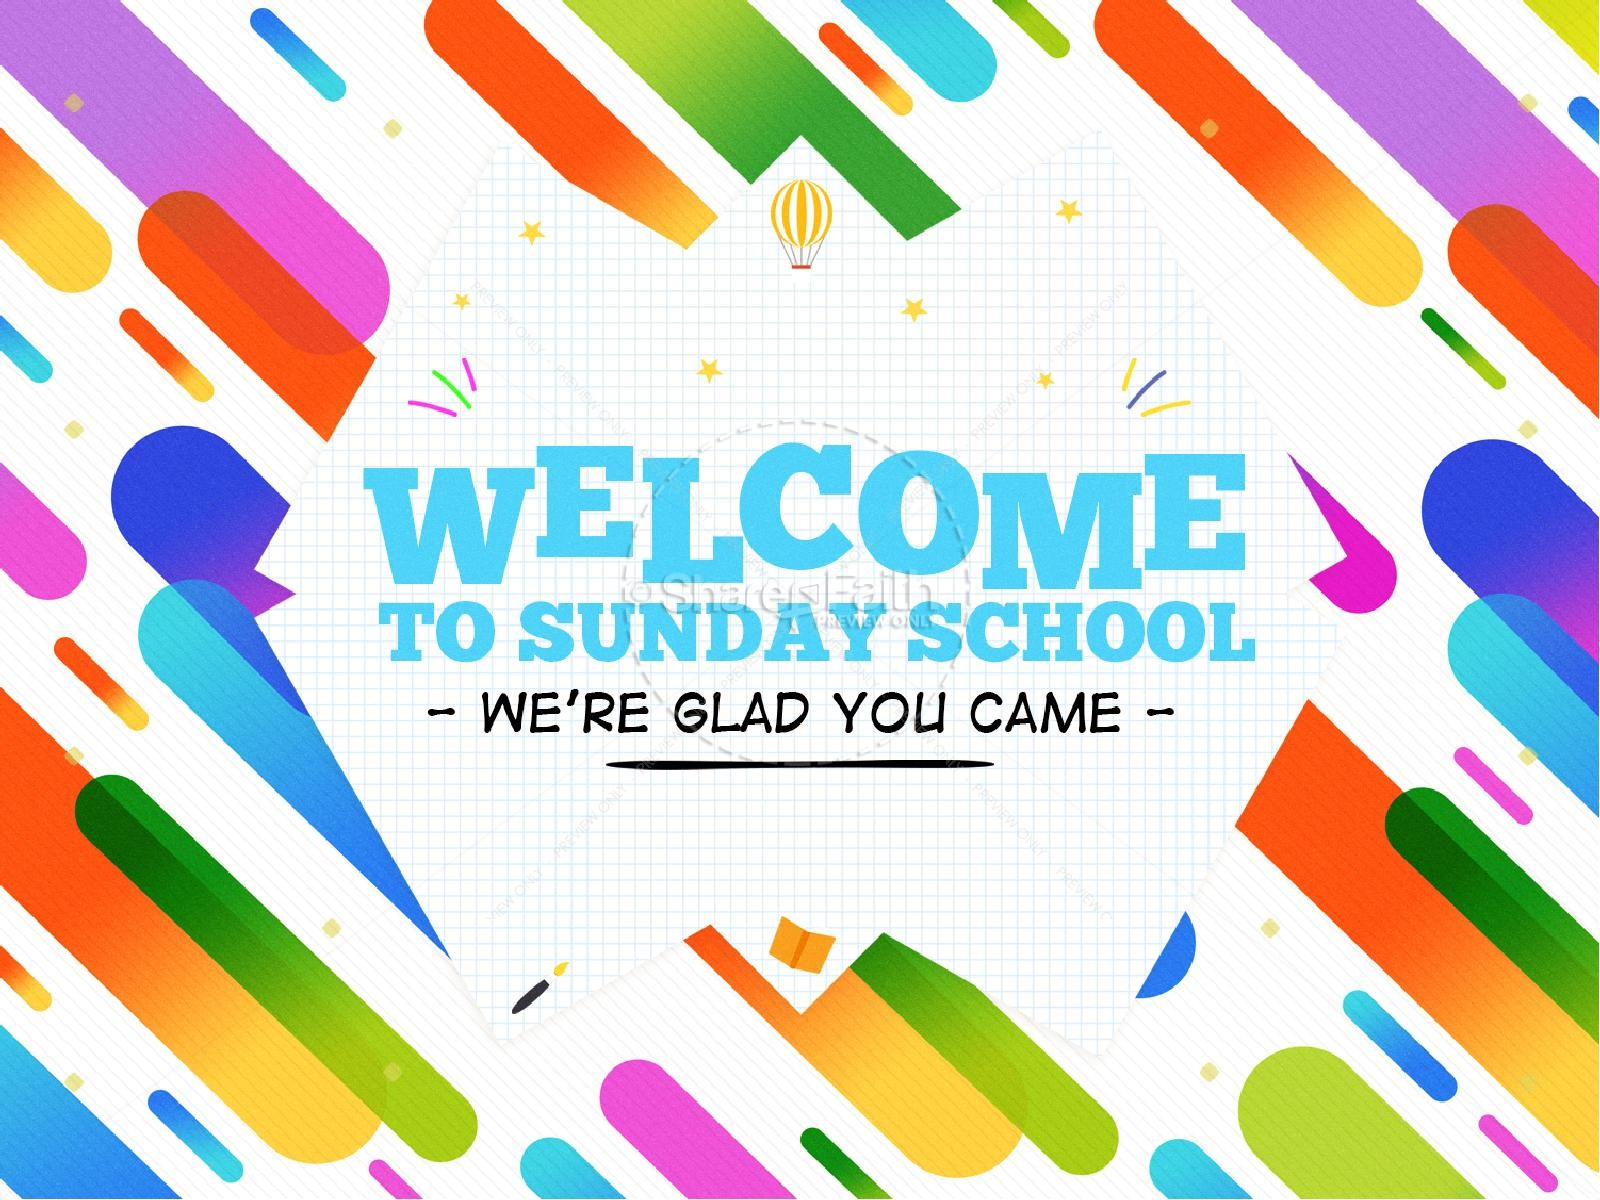 Sunday School Jelly Bean Children's Church PowerPoint